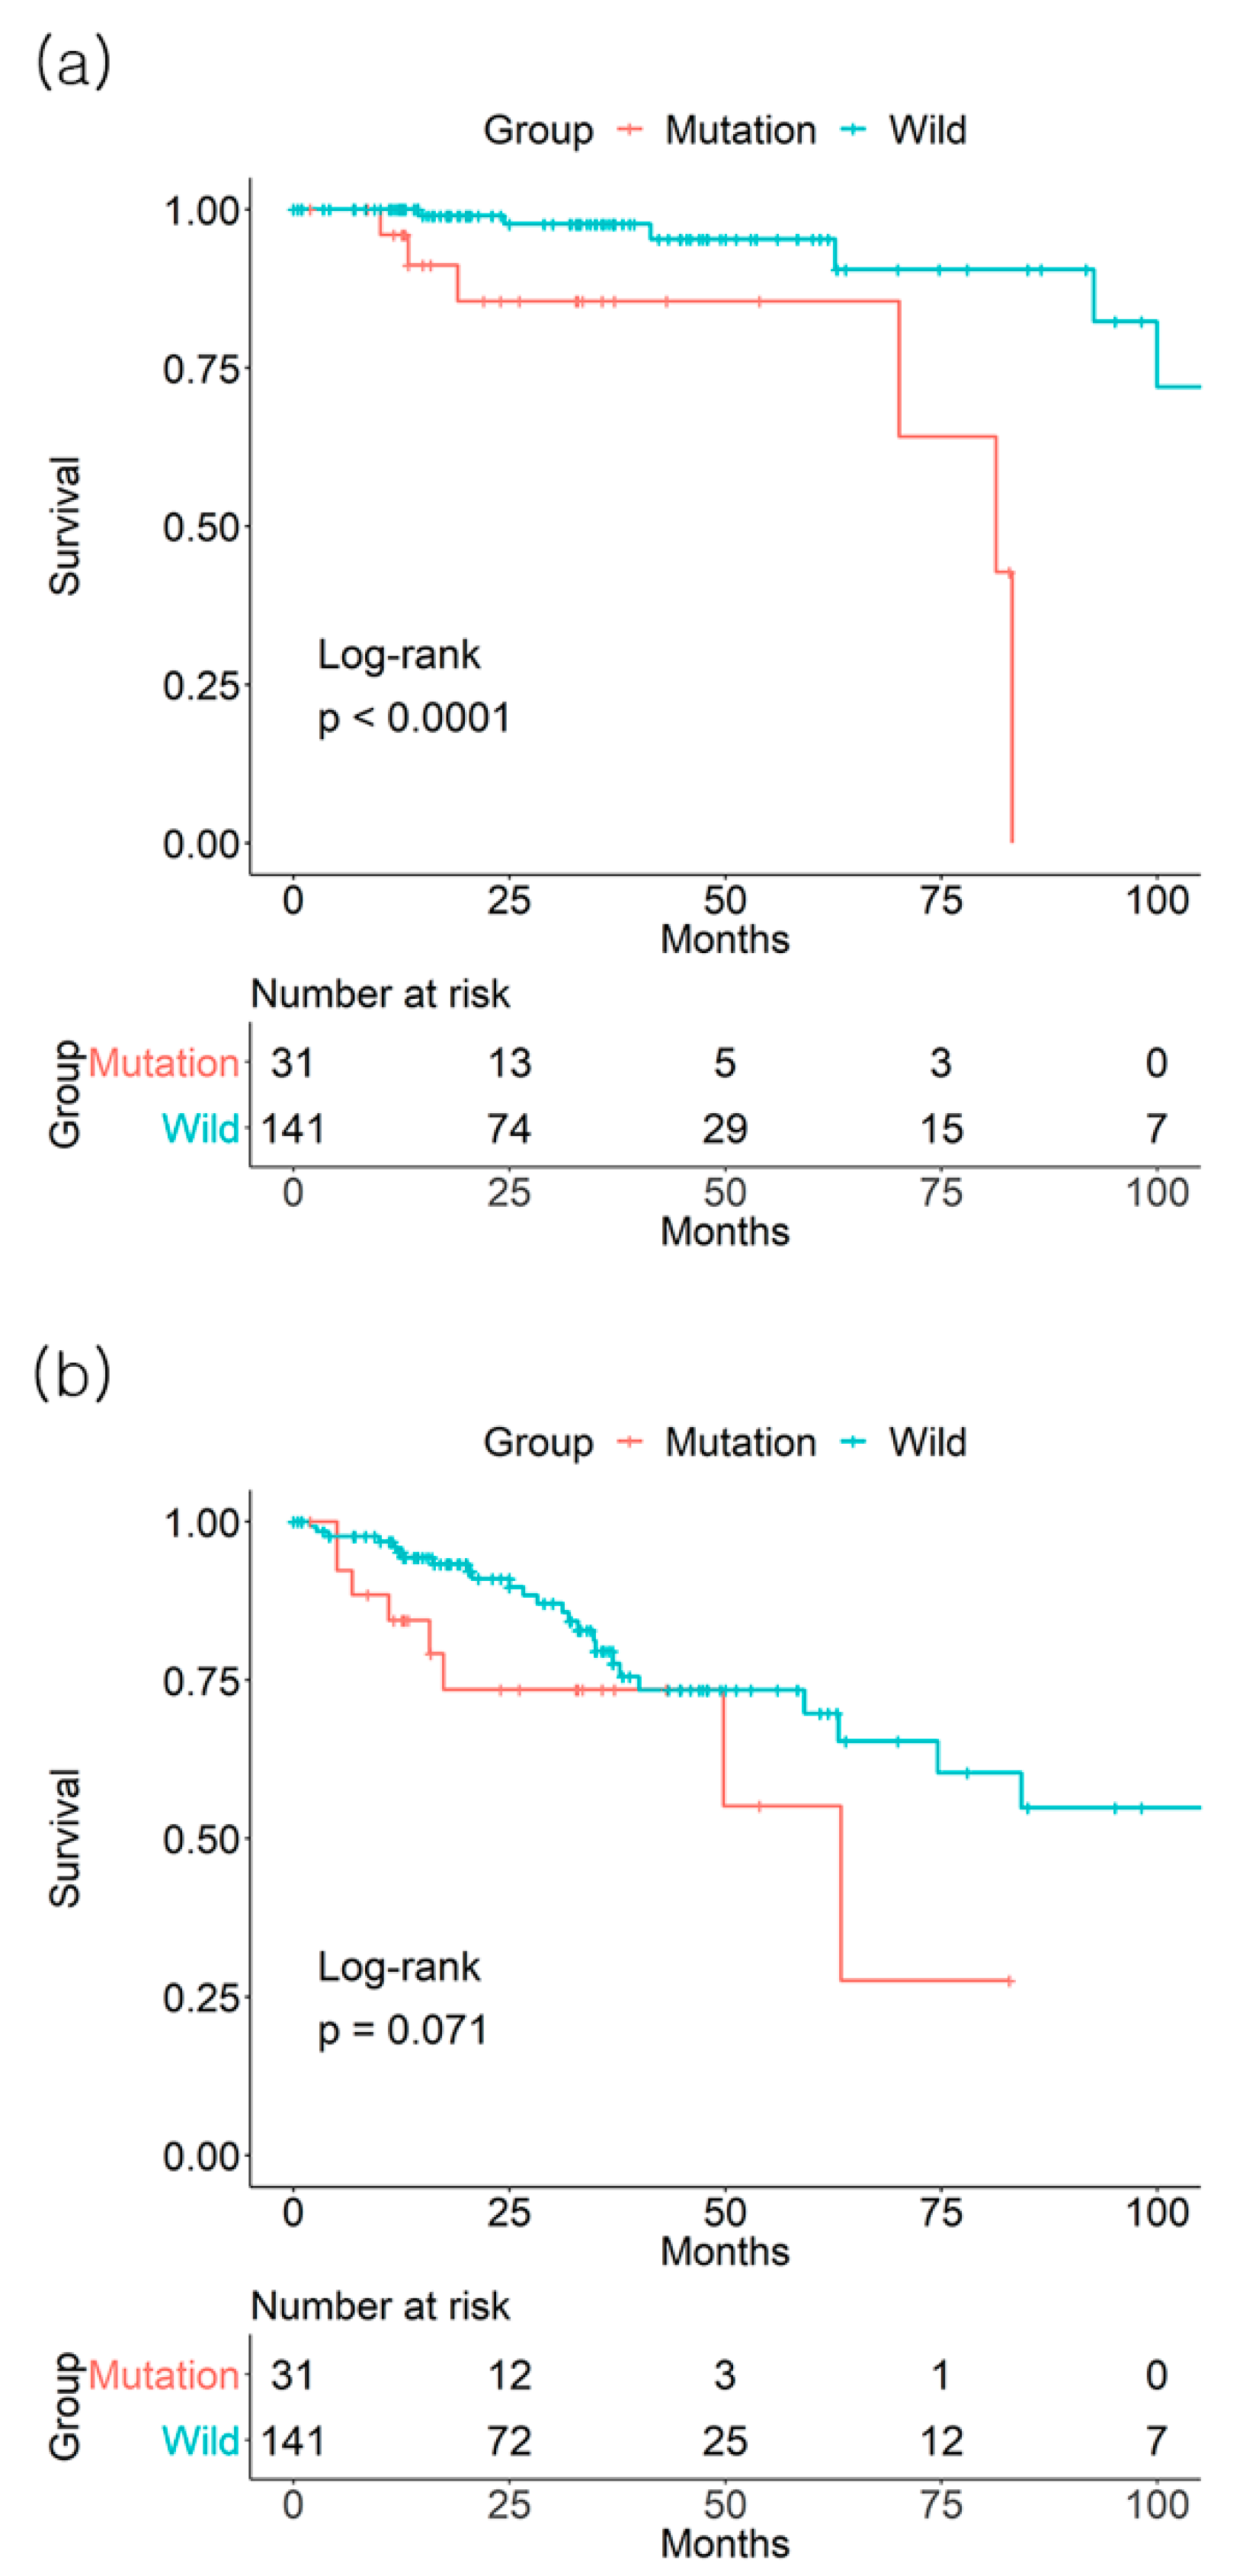 Jcm Free Full Text Colorectal Cancer Prognosis Is Not Associated With Braf And Kras Mutations A Strobe Compliant Study Html